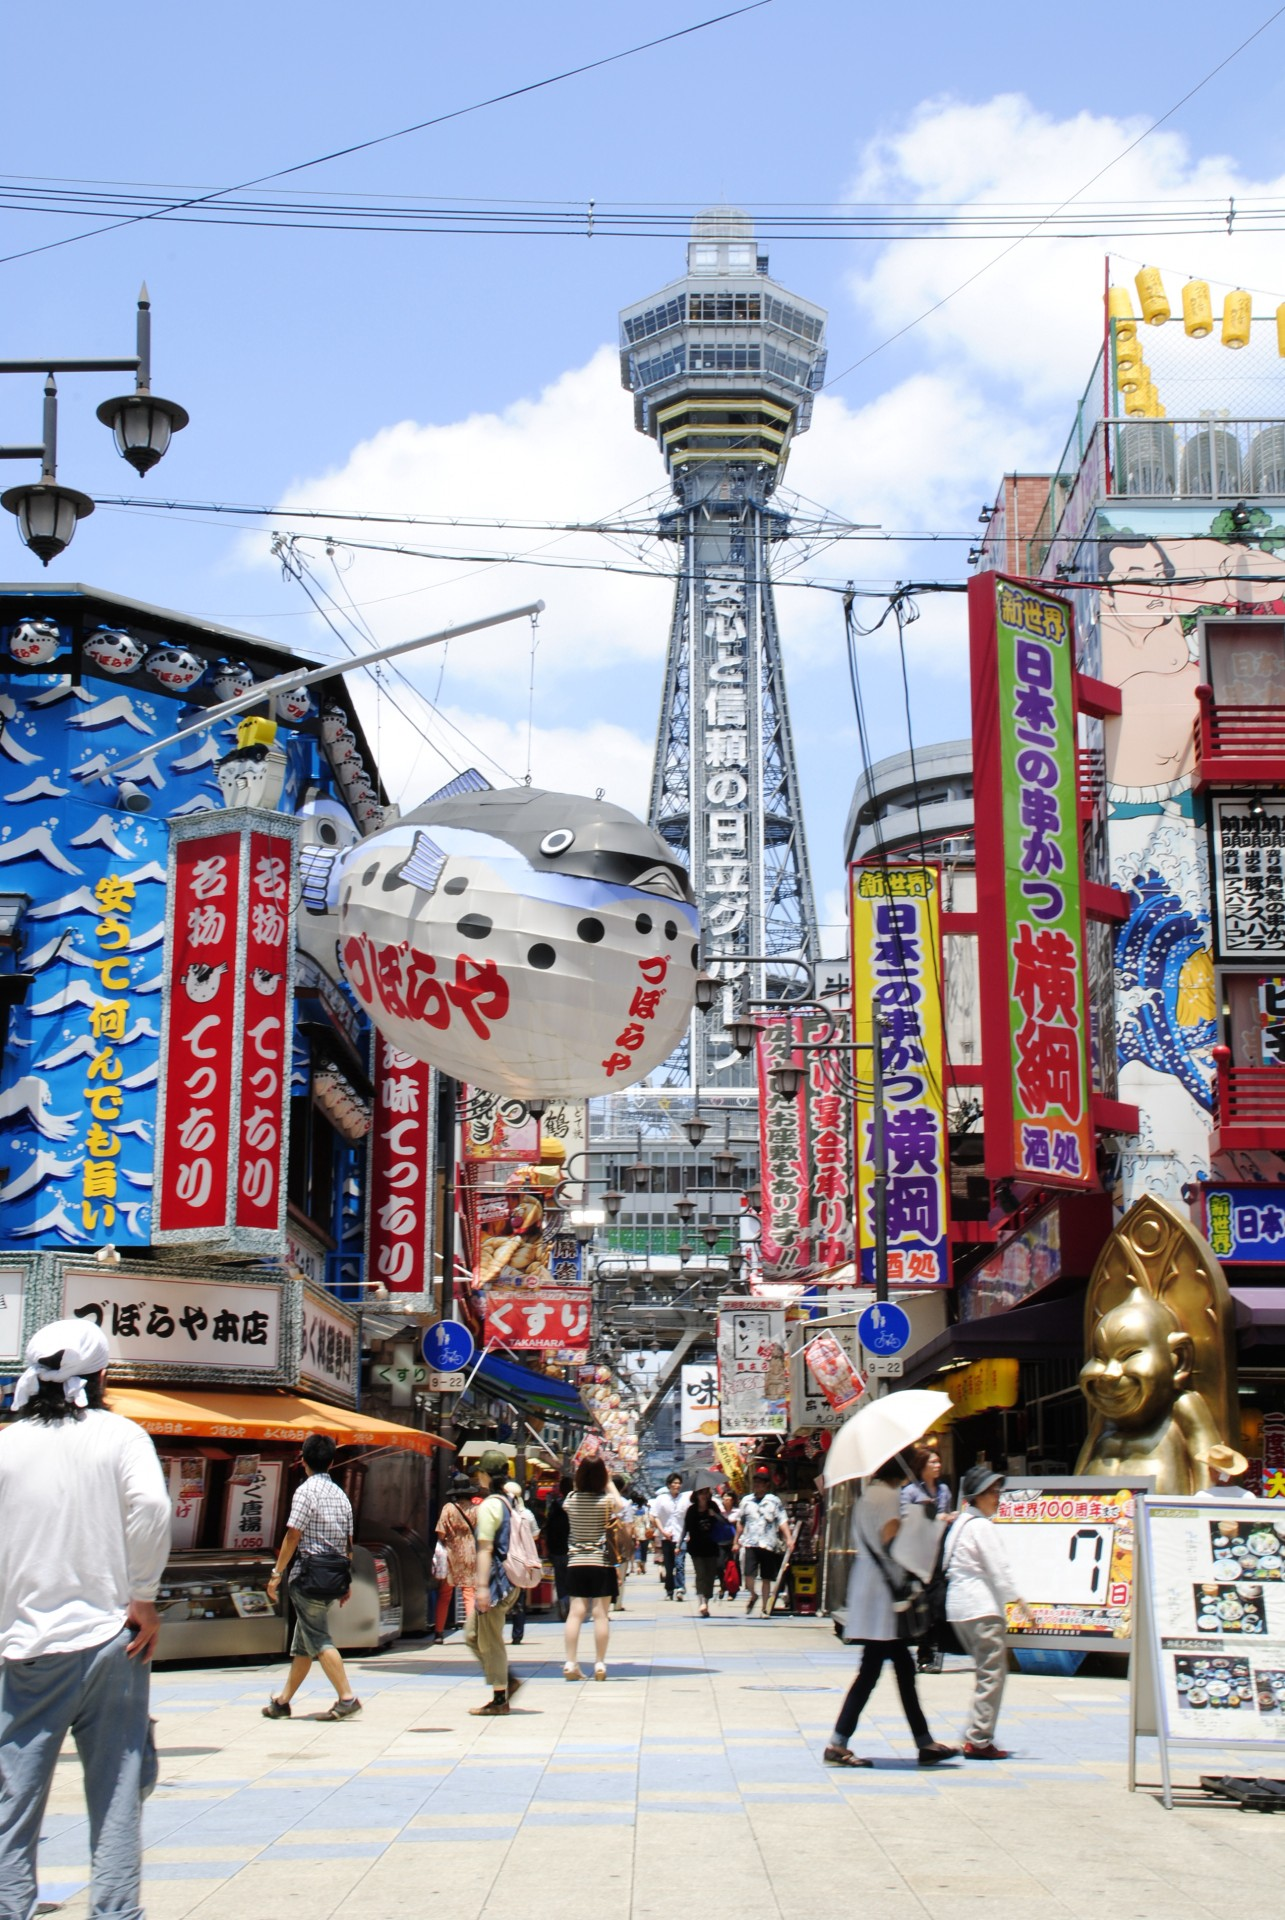 The street of Shinsekai district with colourful shop signs and Tsutenkaku Tower